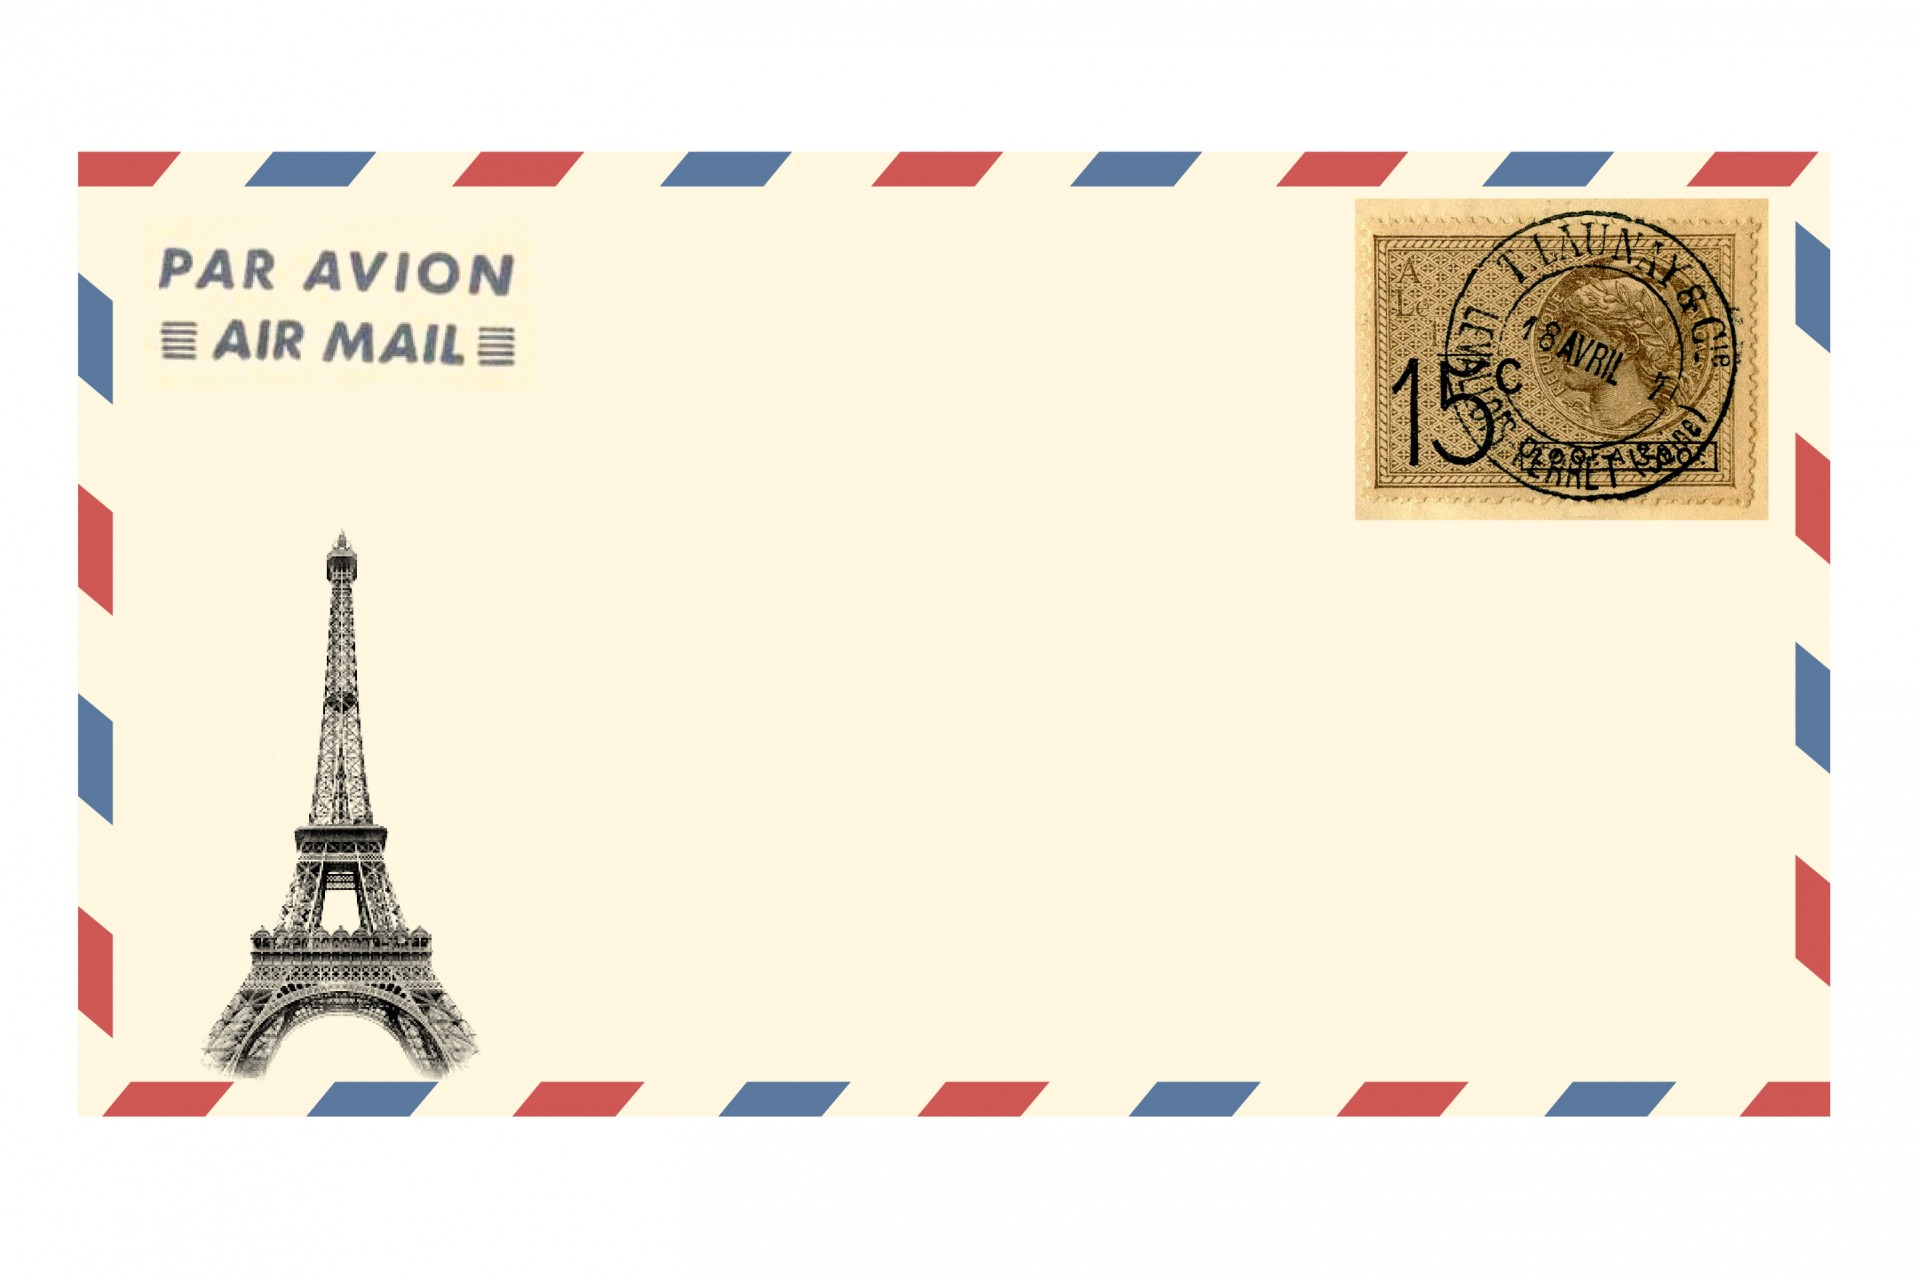 Air mail eiffel tower. Envelope clipart par avion graphic library